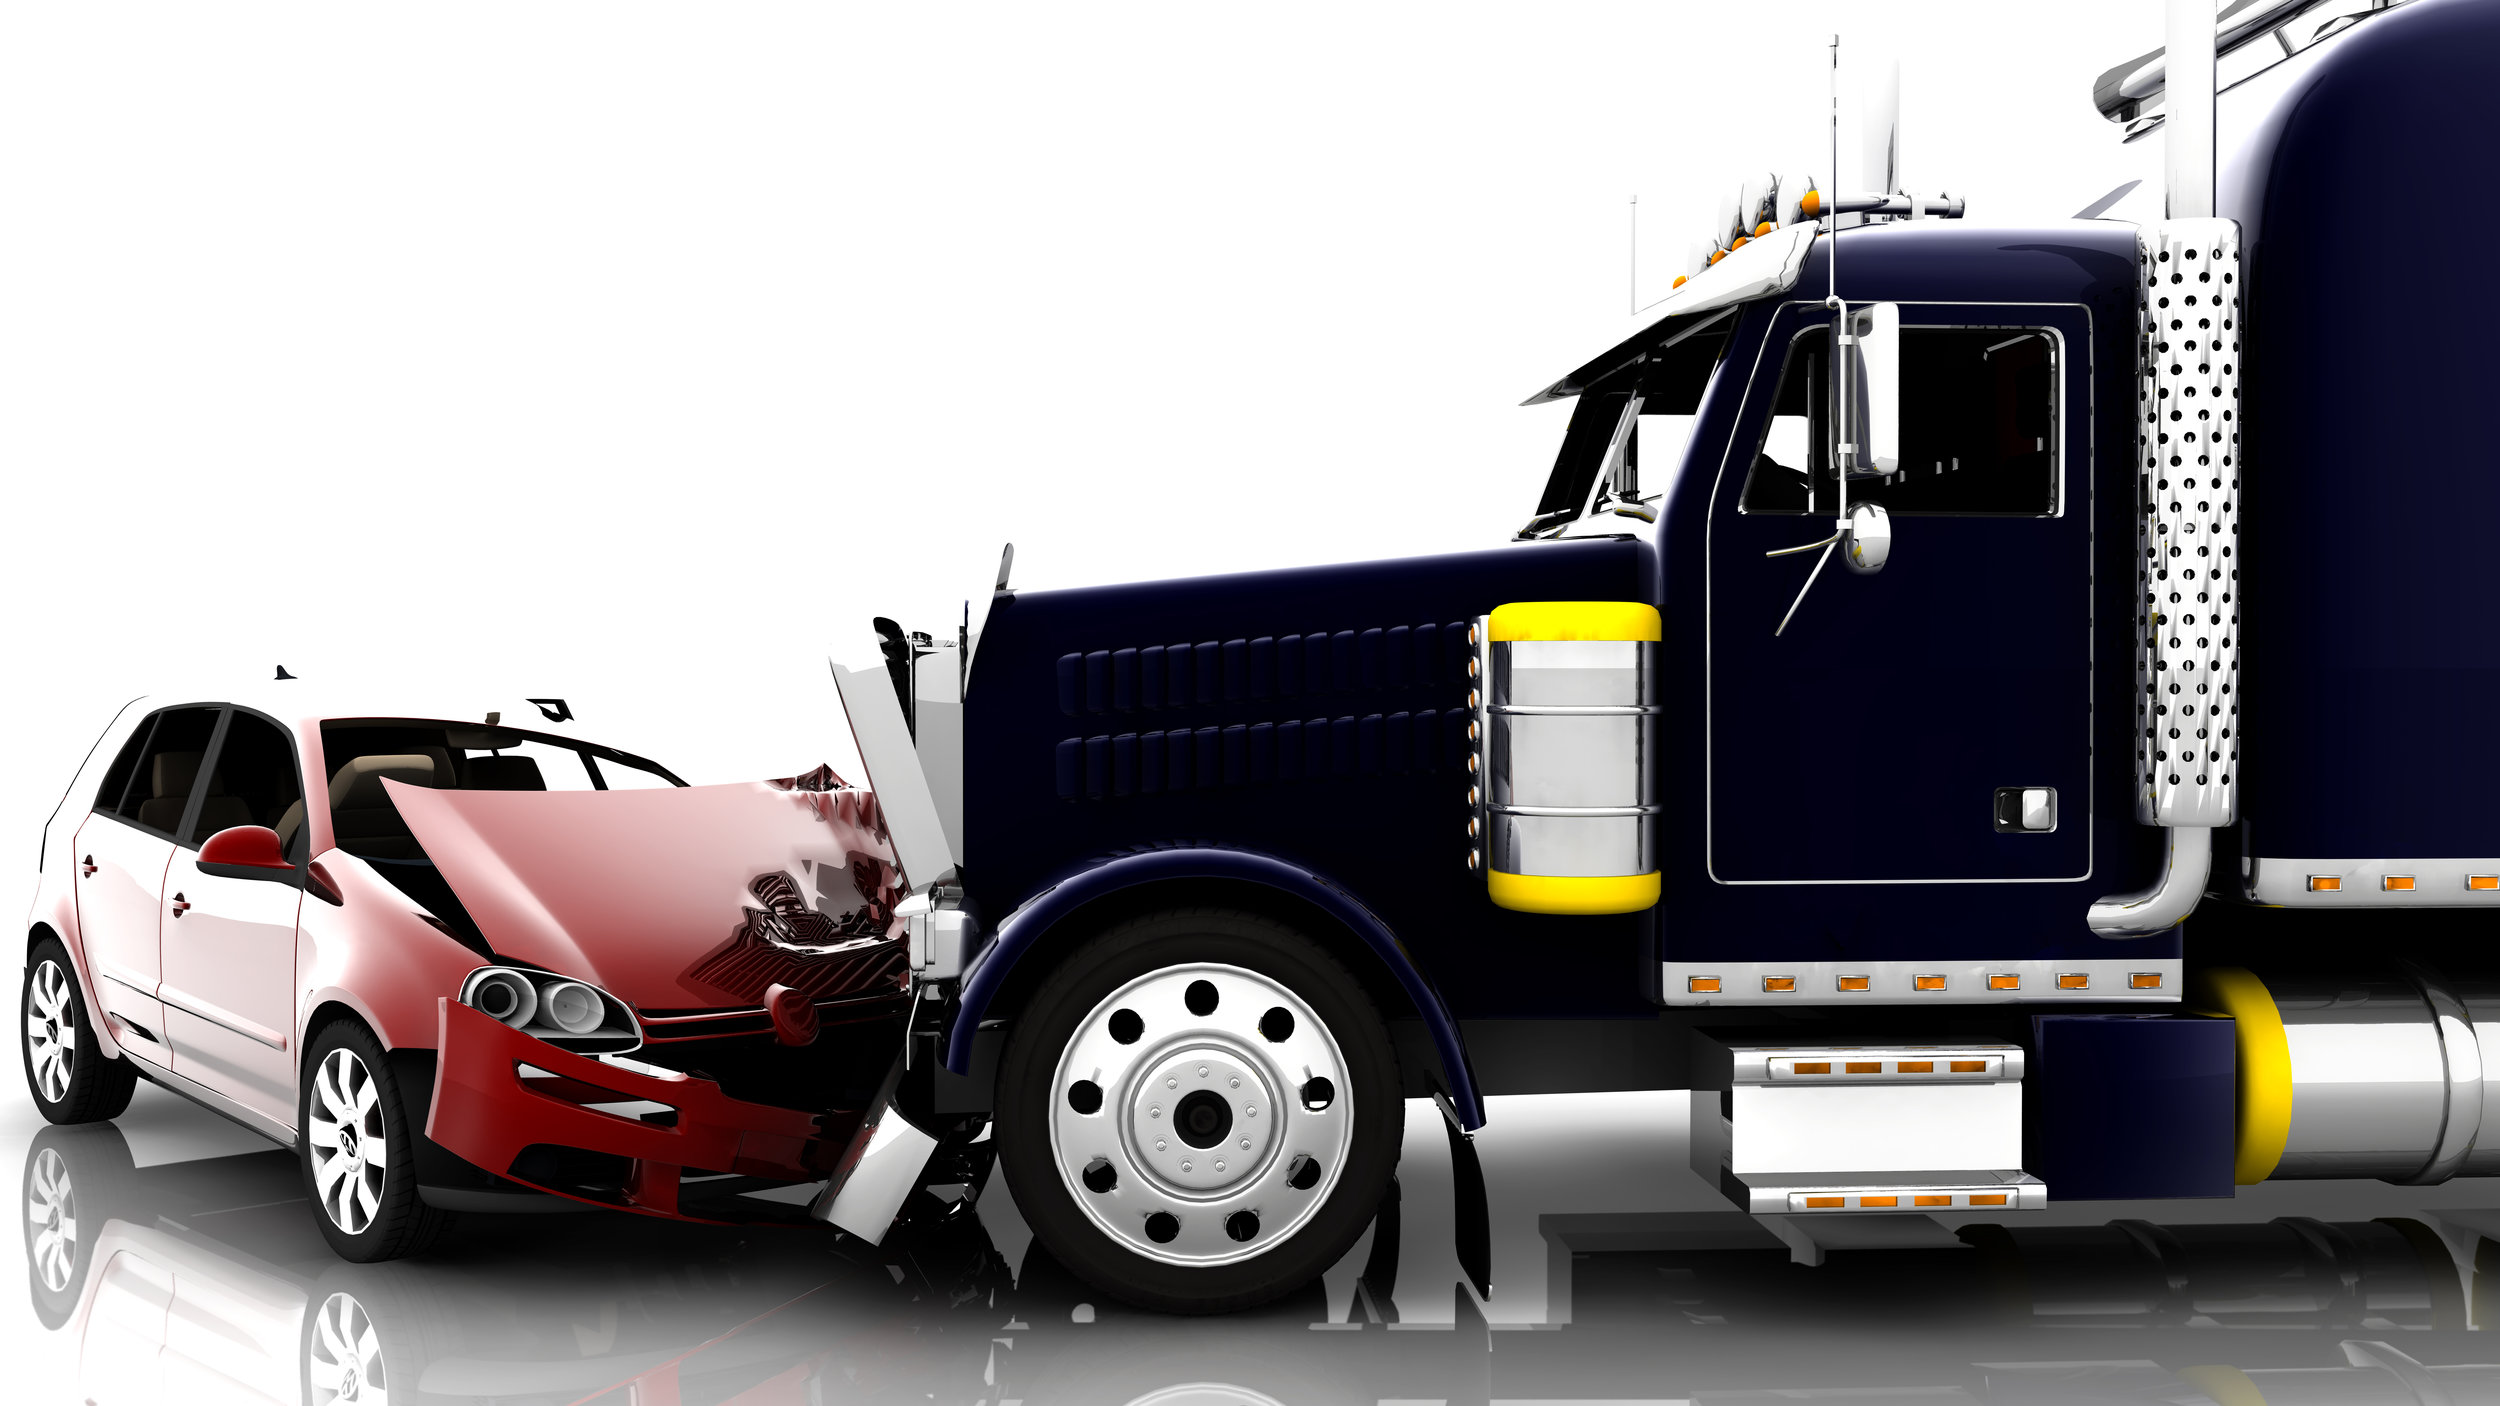 Personal Injury Attorneys Serving Woodstock, McCalla, Lakeview, Vance and all of Alabama